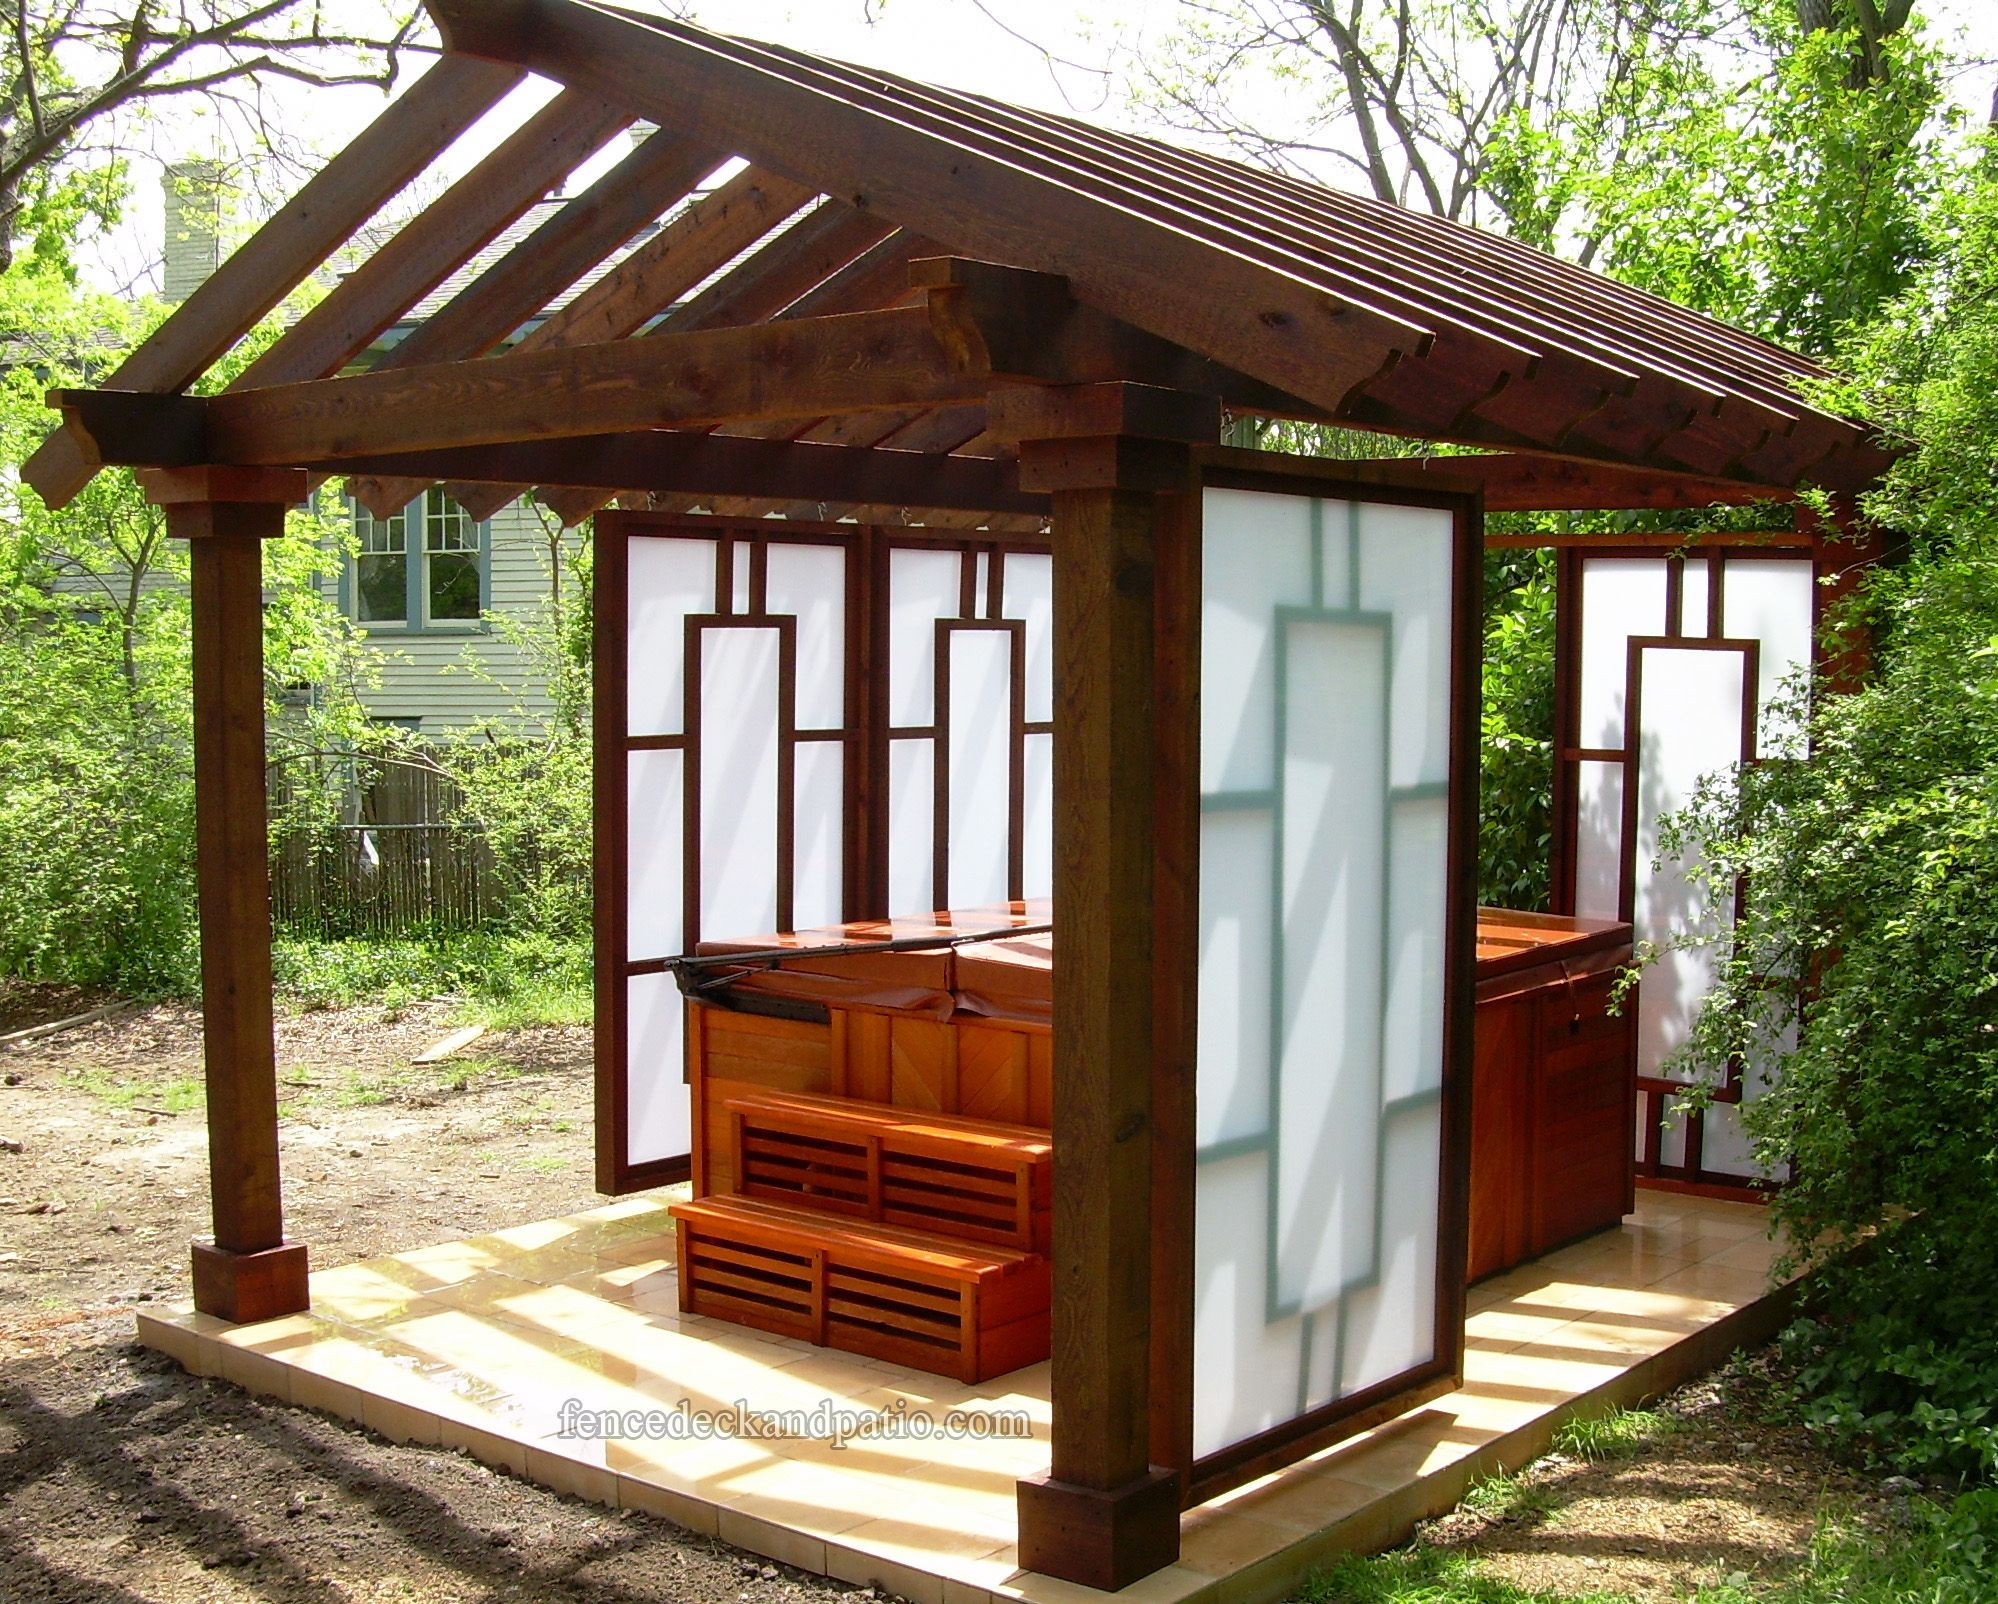 Pergola curtains outdoor - Outdoor Hot Tub With Sliding Walls You Can Choose To Let The Sun In Or